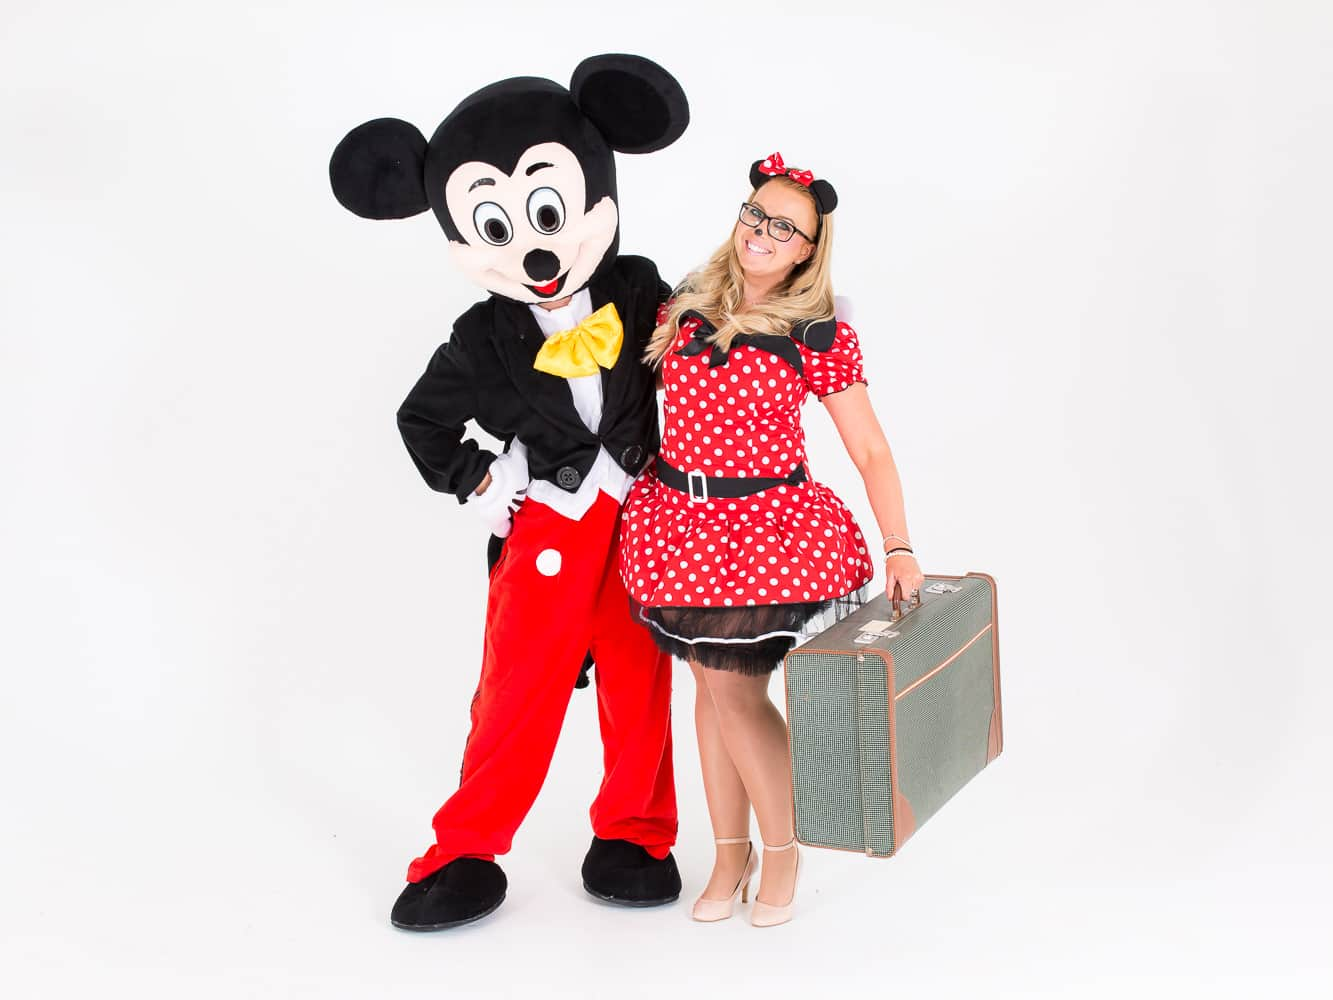 Two staff members from LNOF dressed up as Mickey and Minnie Mouse